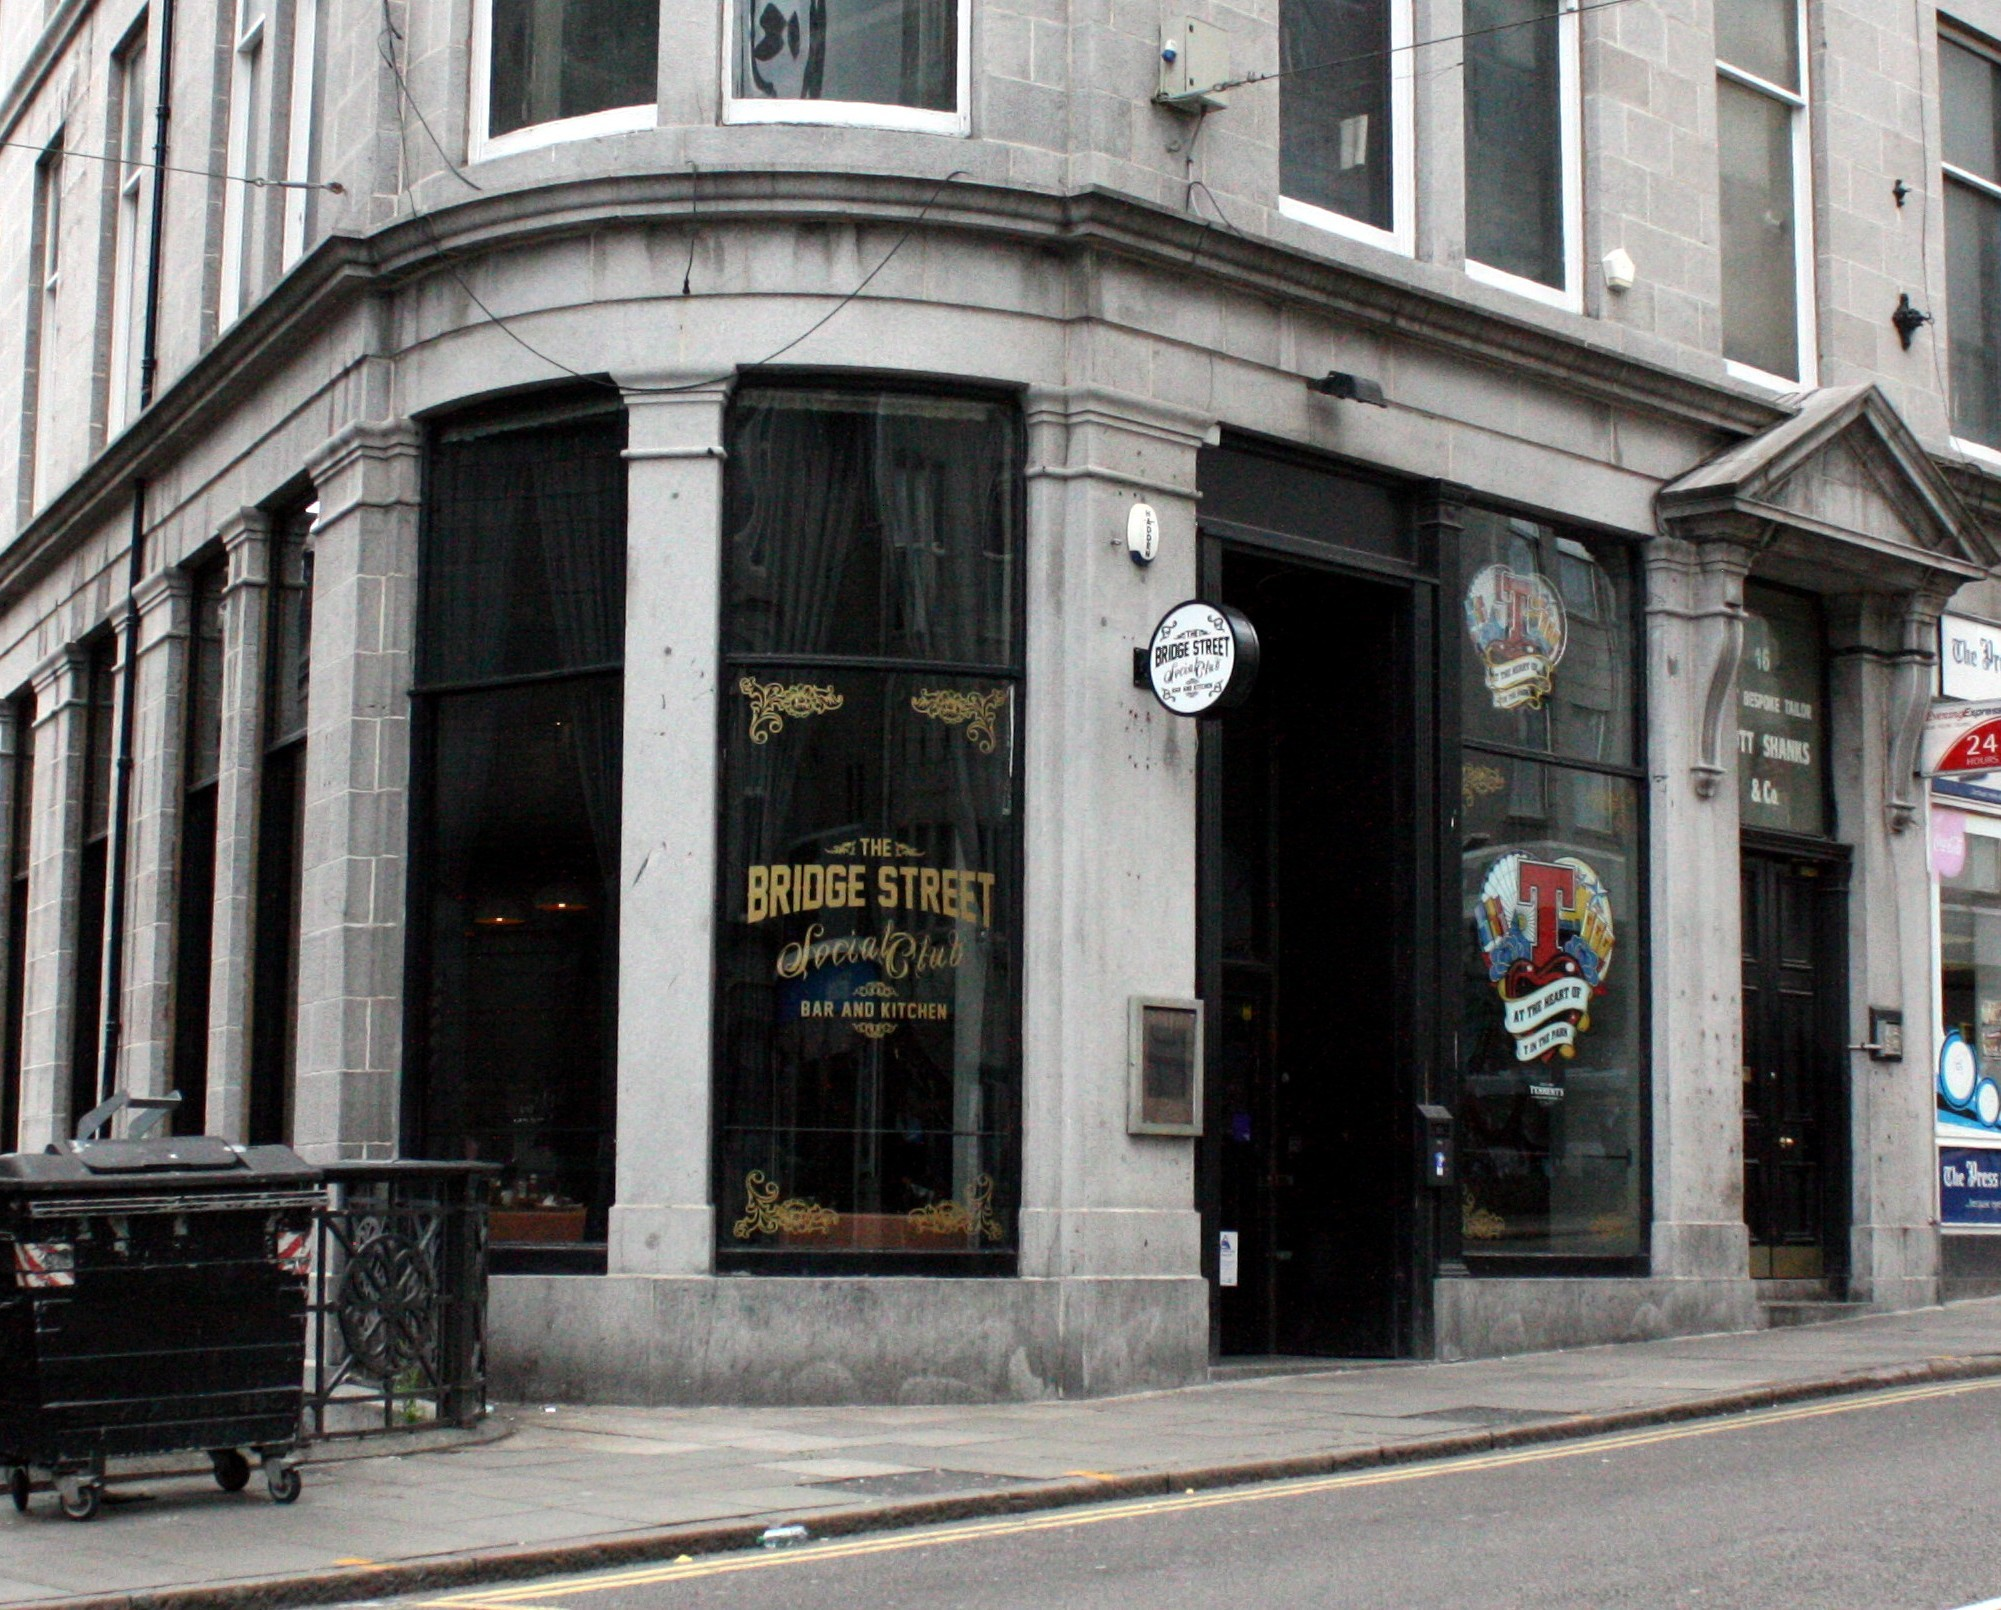 Bridge Street Social Club on Bridge Street is one of the venues the Save Our Scene crowdfunder was set up for